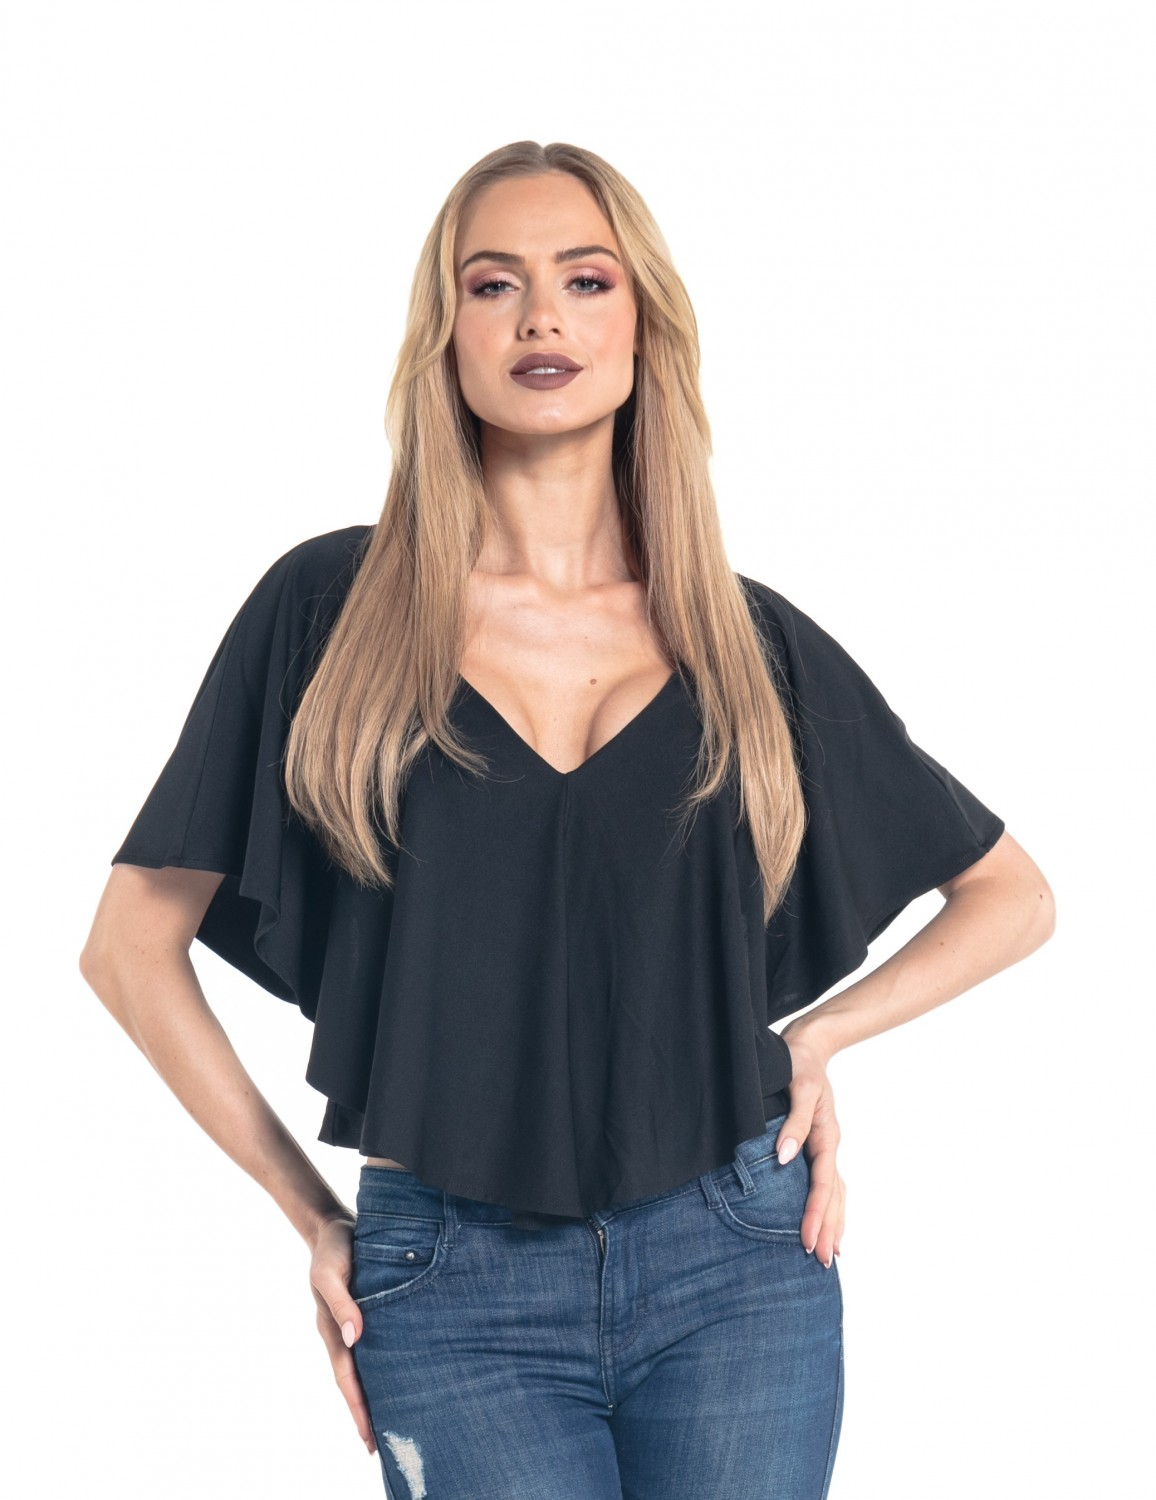 a6f91bcc0a95 Glamour Empire. Women s Silky Pleated Cape Top V-Neckline Batwing Sleeves.  578